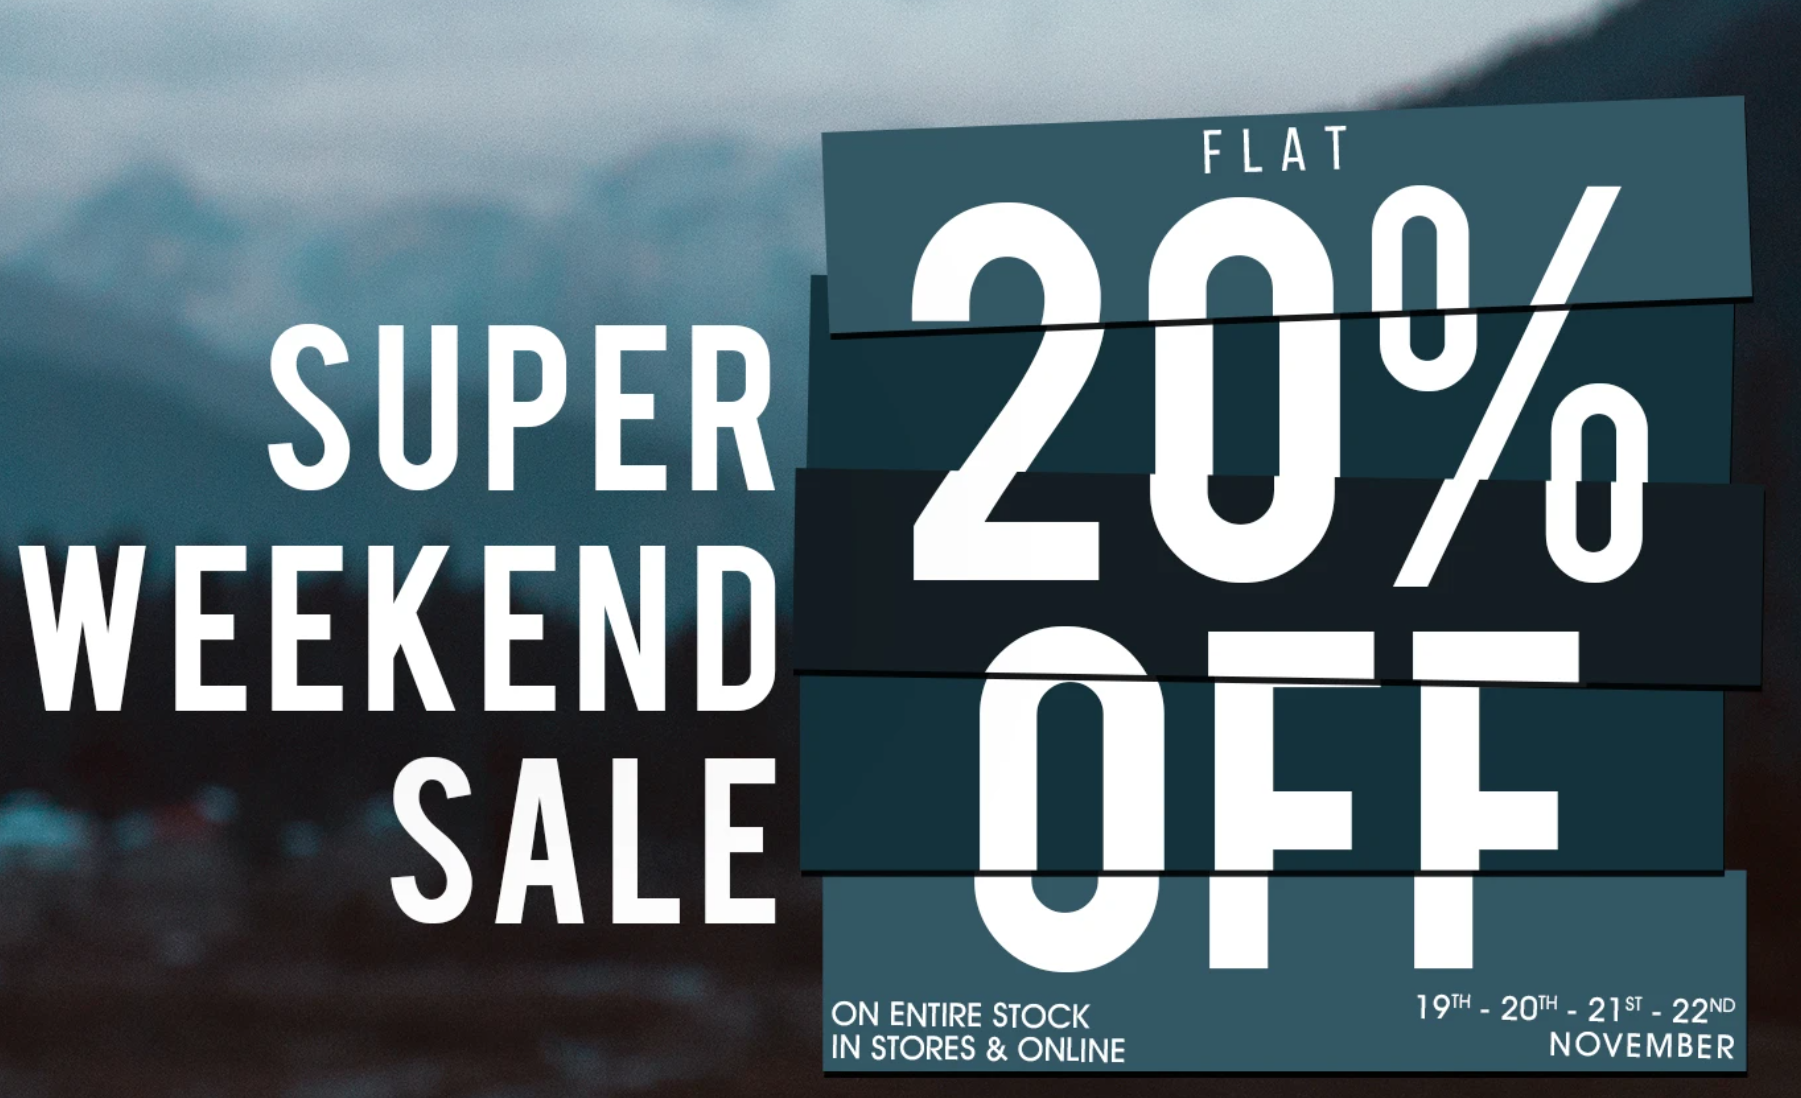 Super Weeked Sale